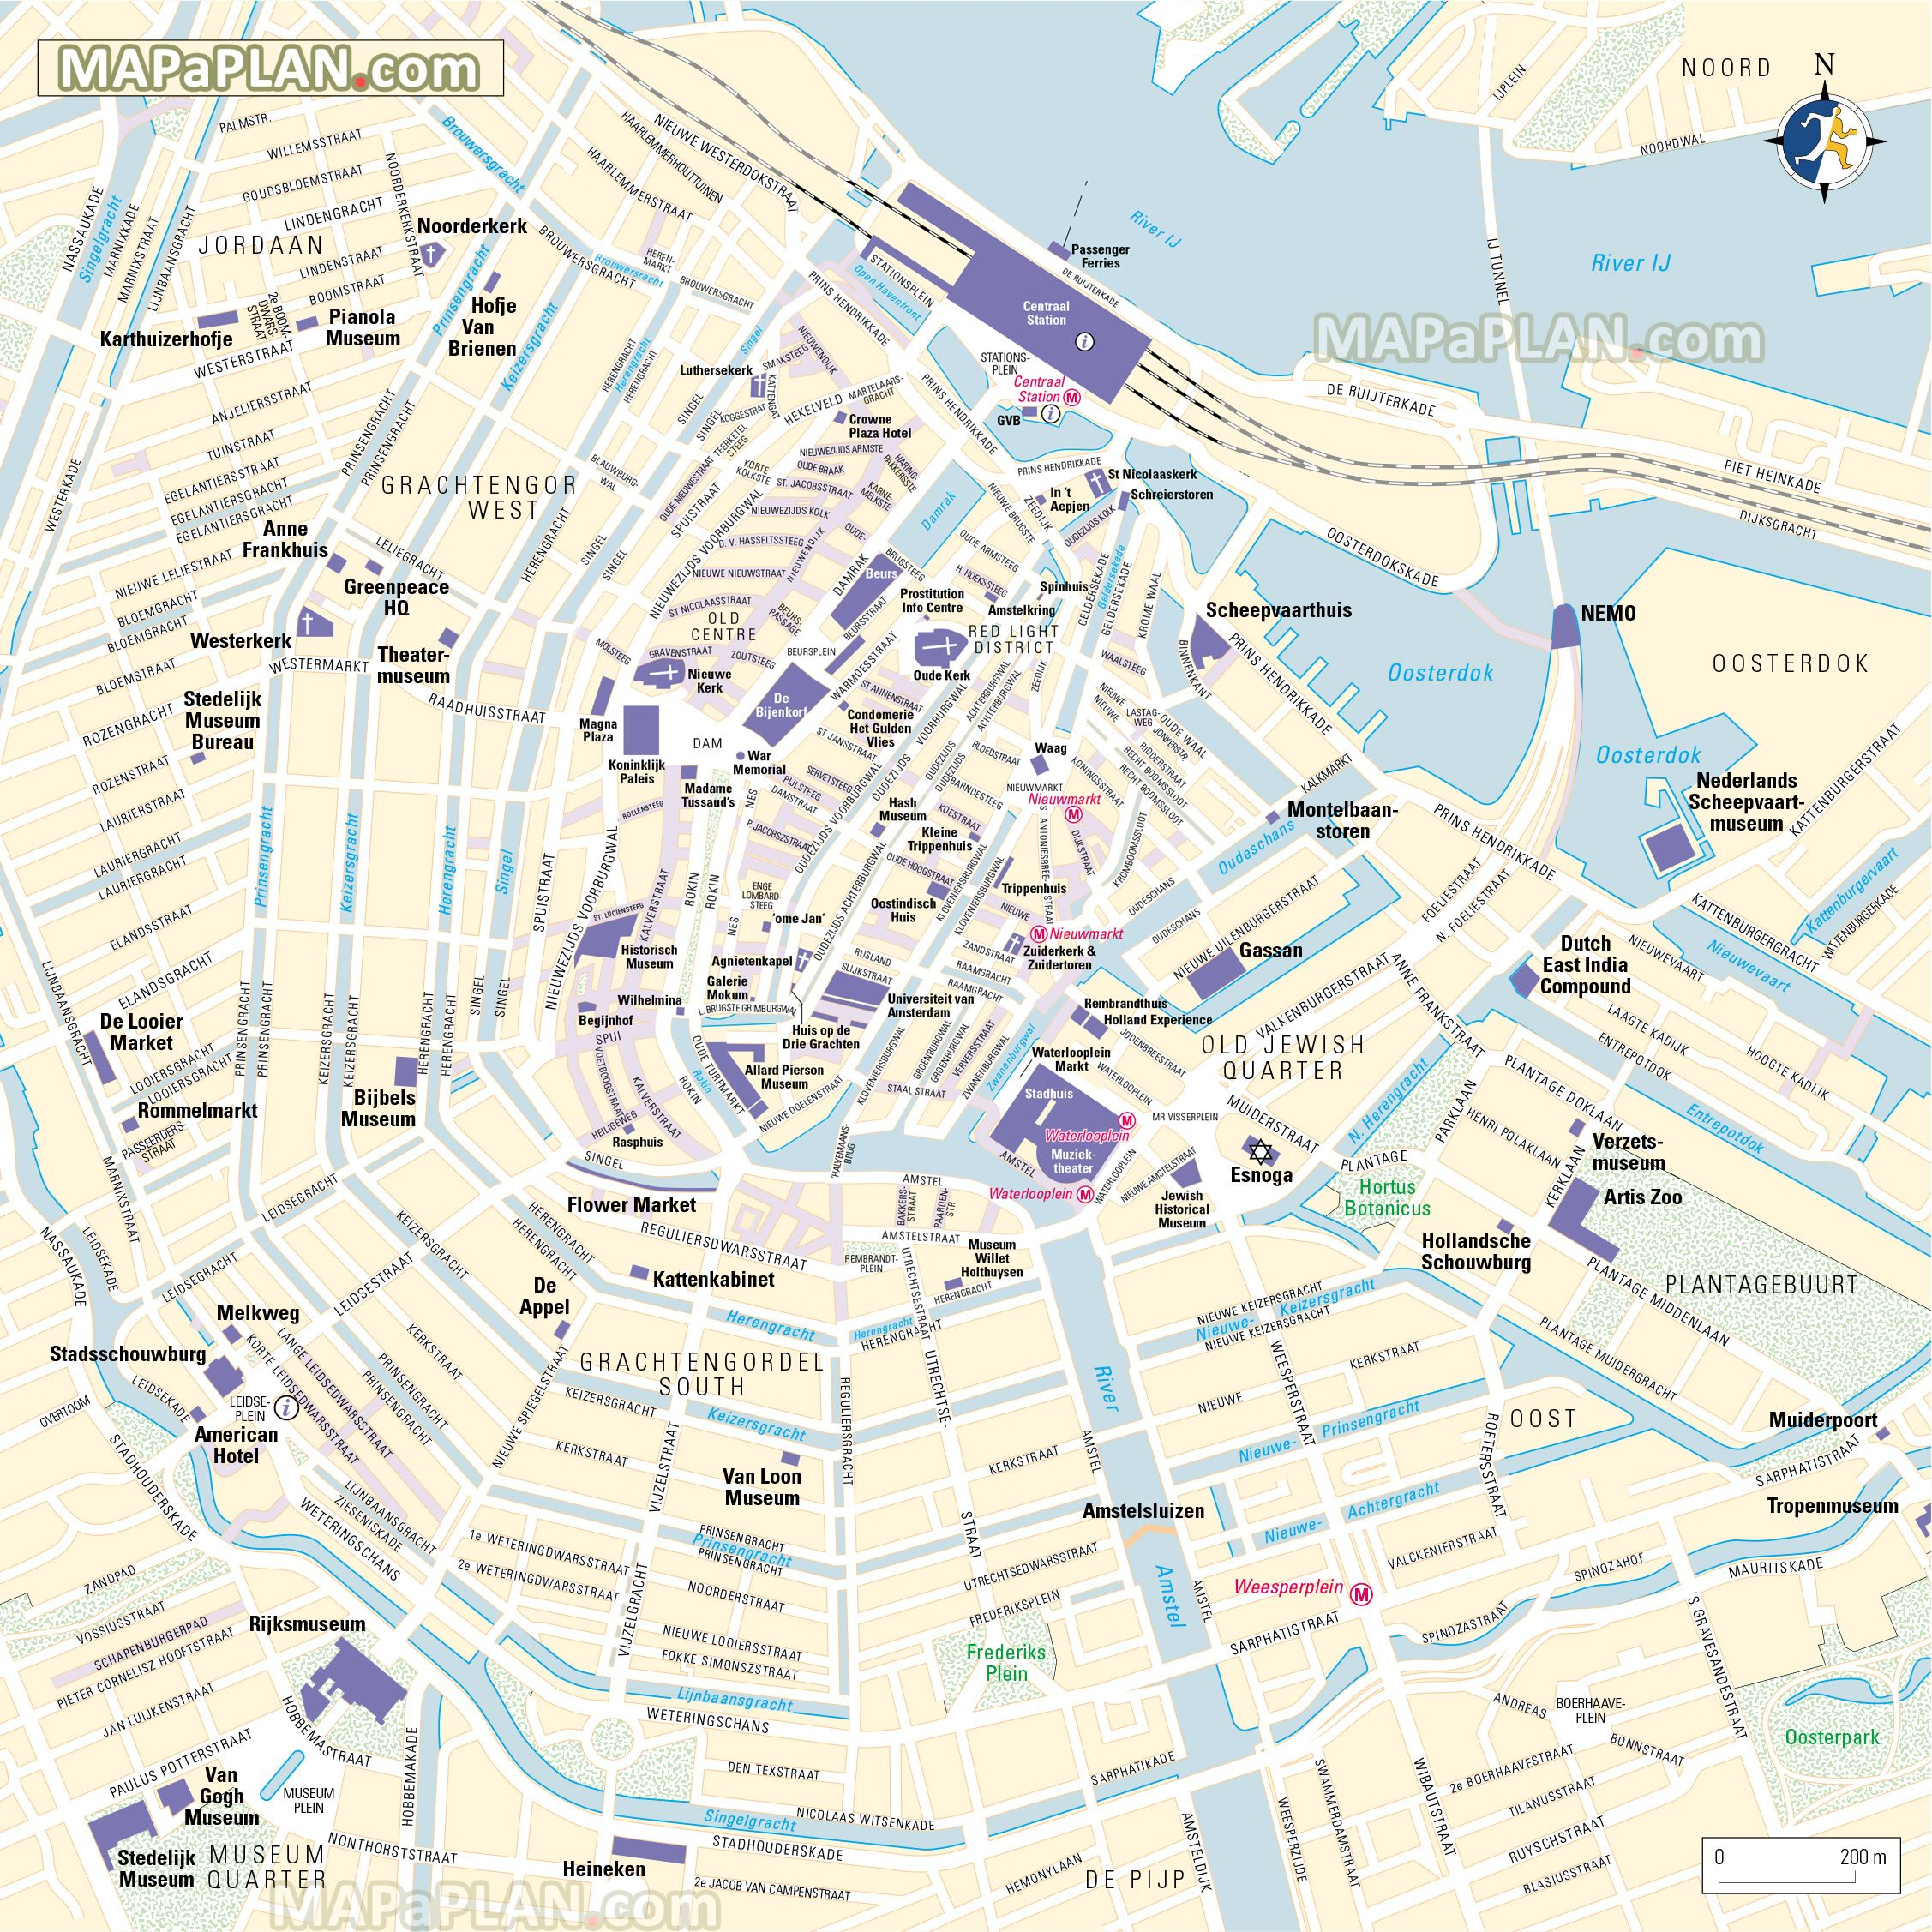 Amsterdam Top Tourist Attractions Map 09 Centrum Where To Go What To See Major Historic Points Of Interes Amsterdam Map Amsterdam Tourist Map Amsterdam Tourist